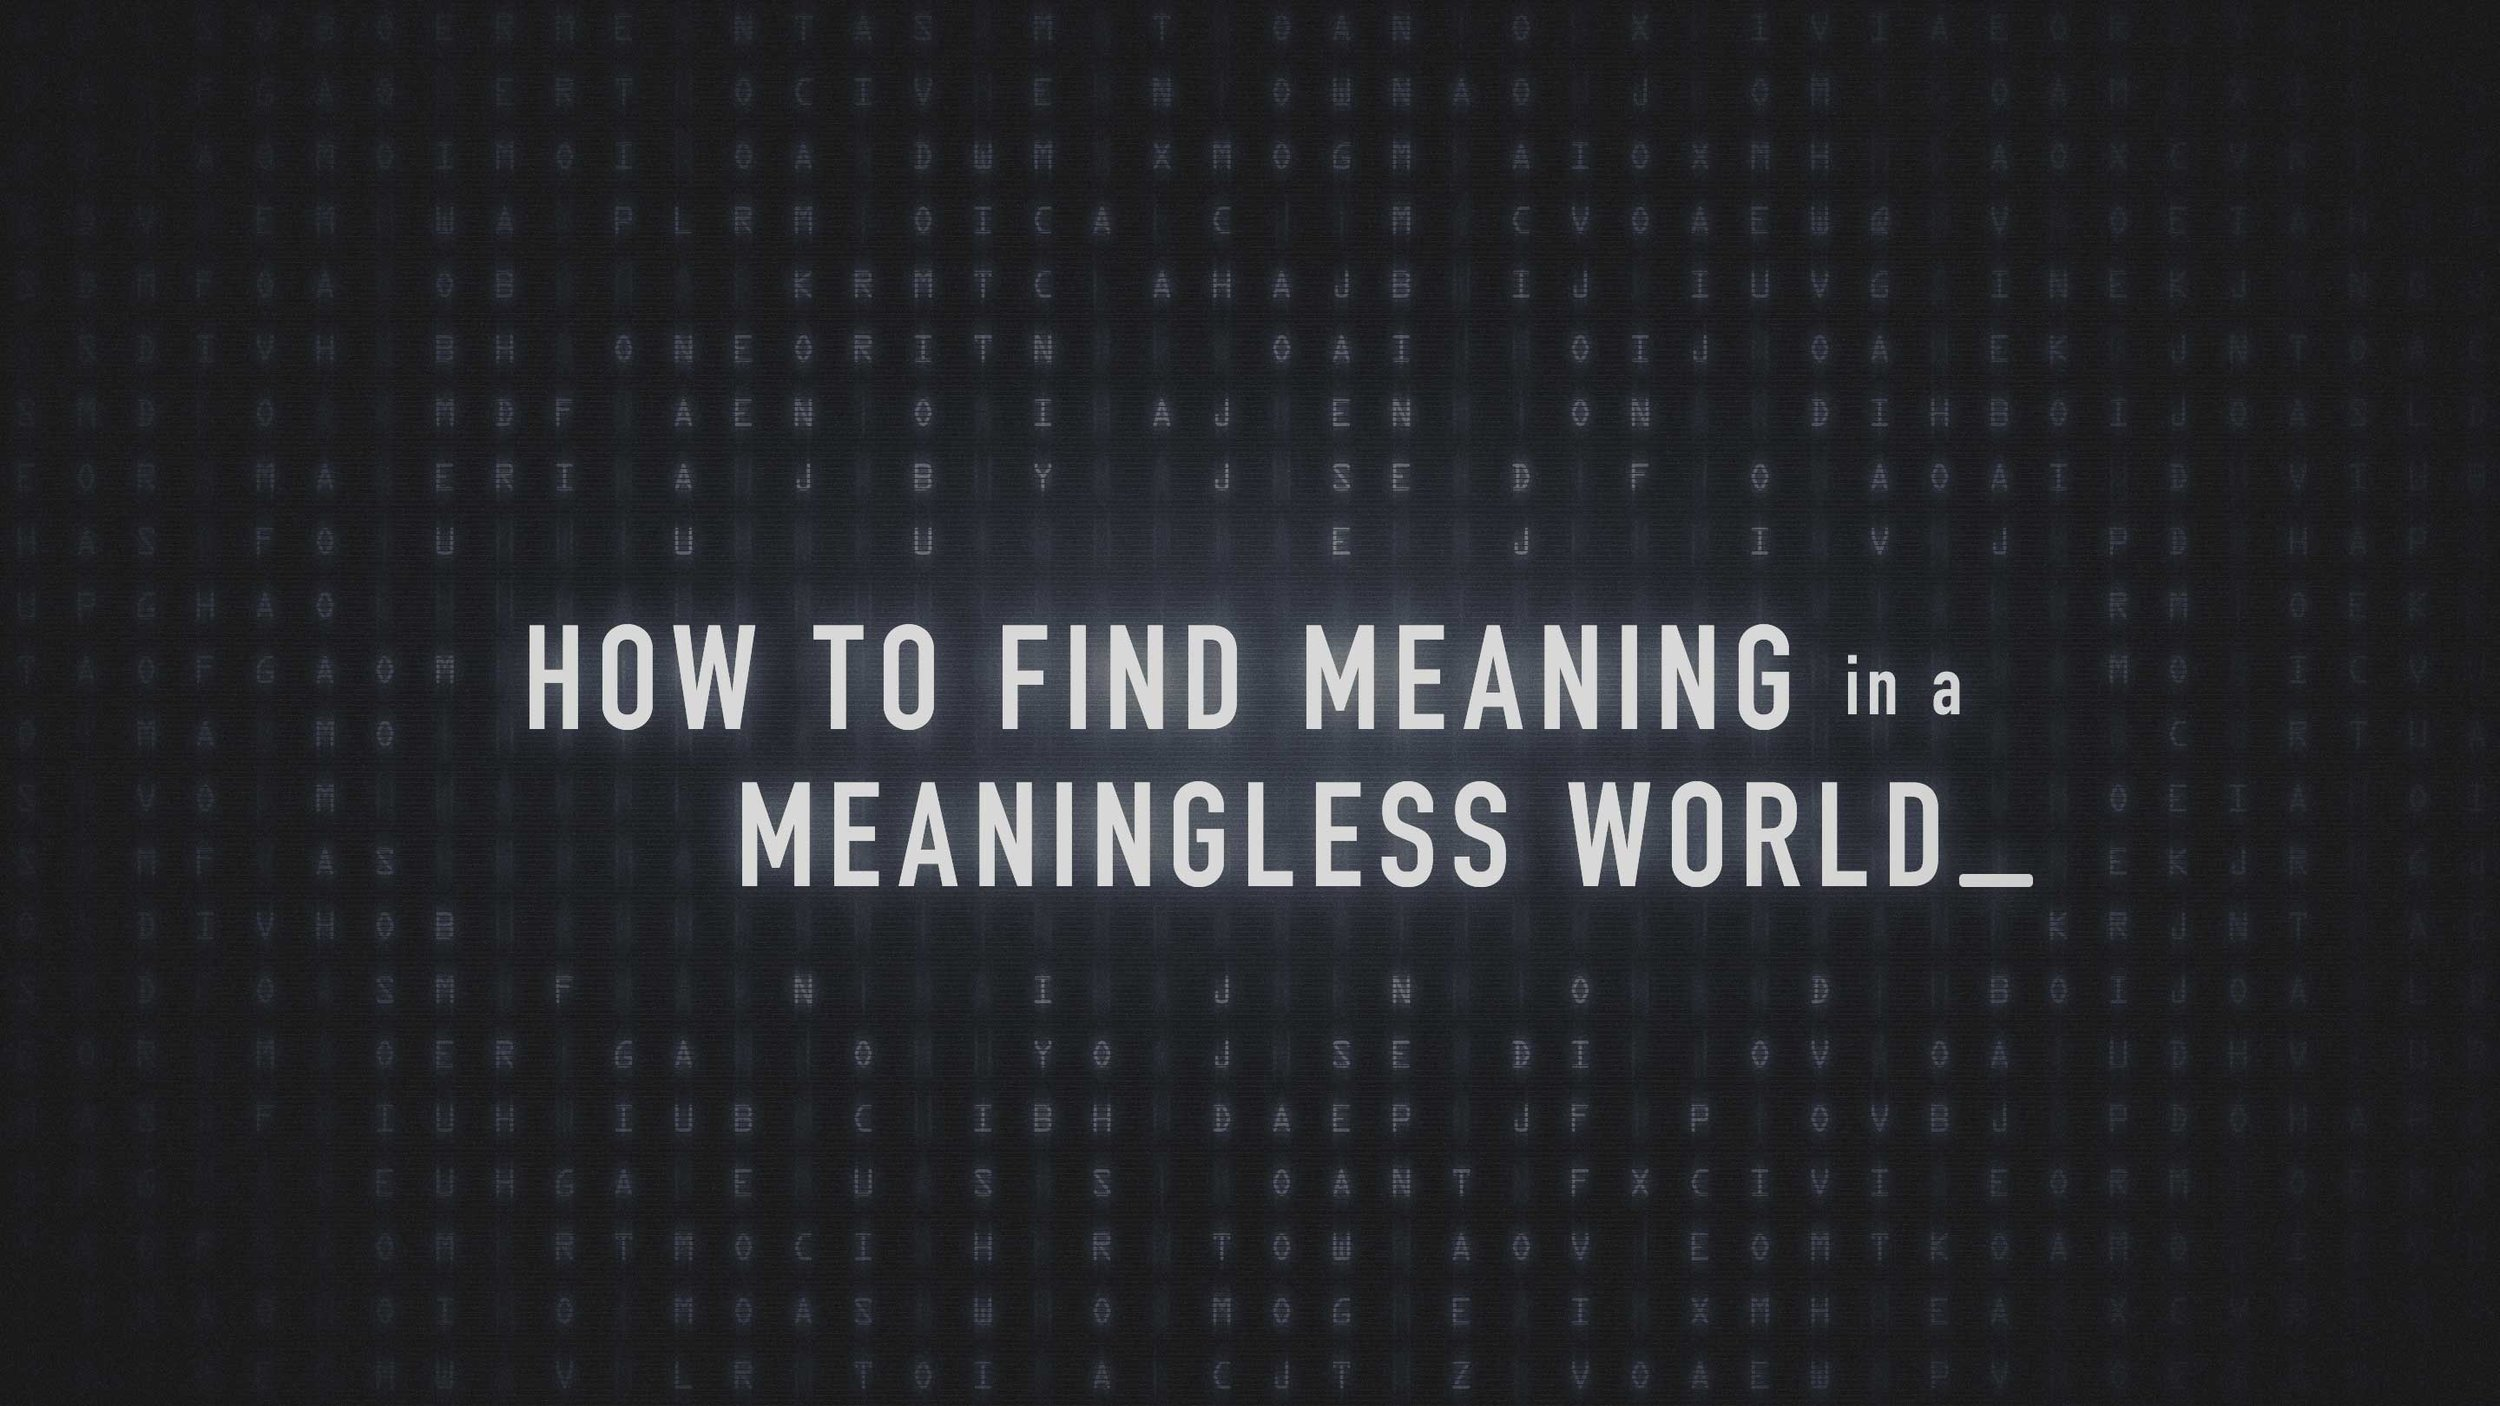 How-to-Find-Meaning-title.jpg